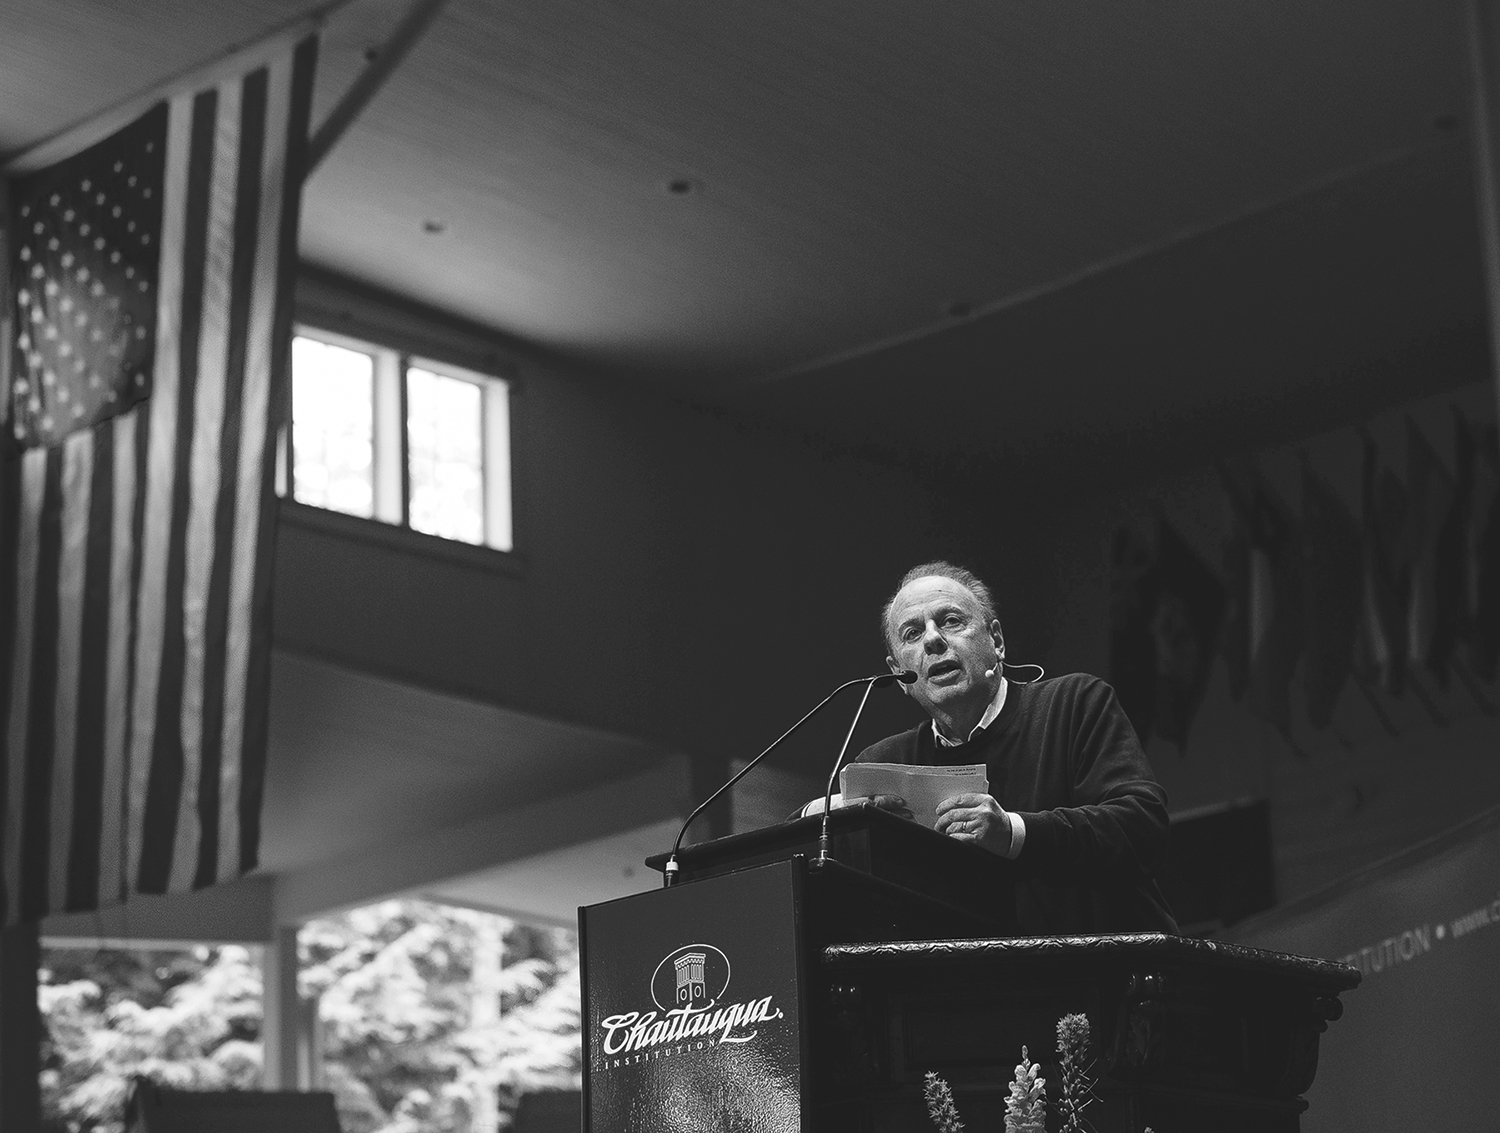 Roger Rosenblatt distingushed professor of english and writting at Stony Brook Univeritsy, speaks at the Amphitheater on Tuesday morning june 30,2015